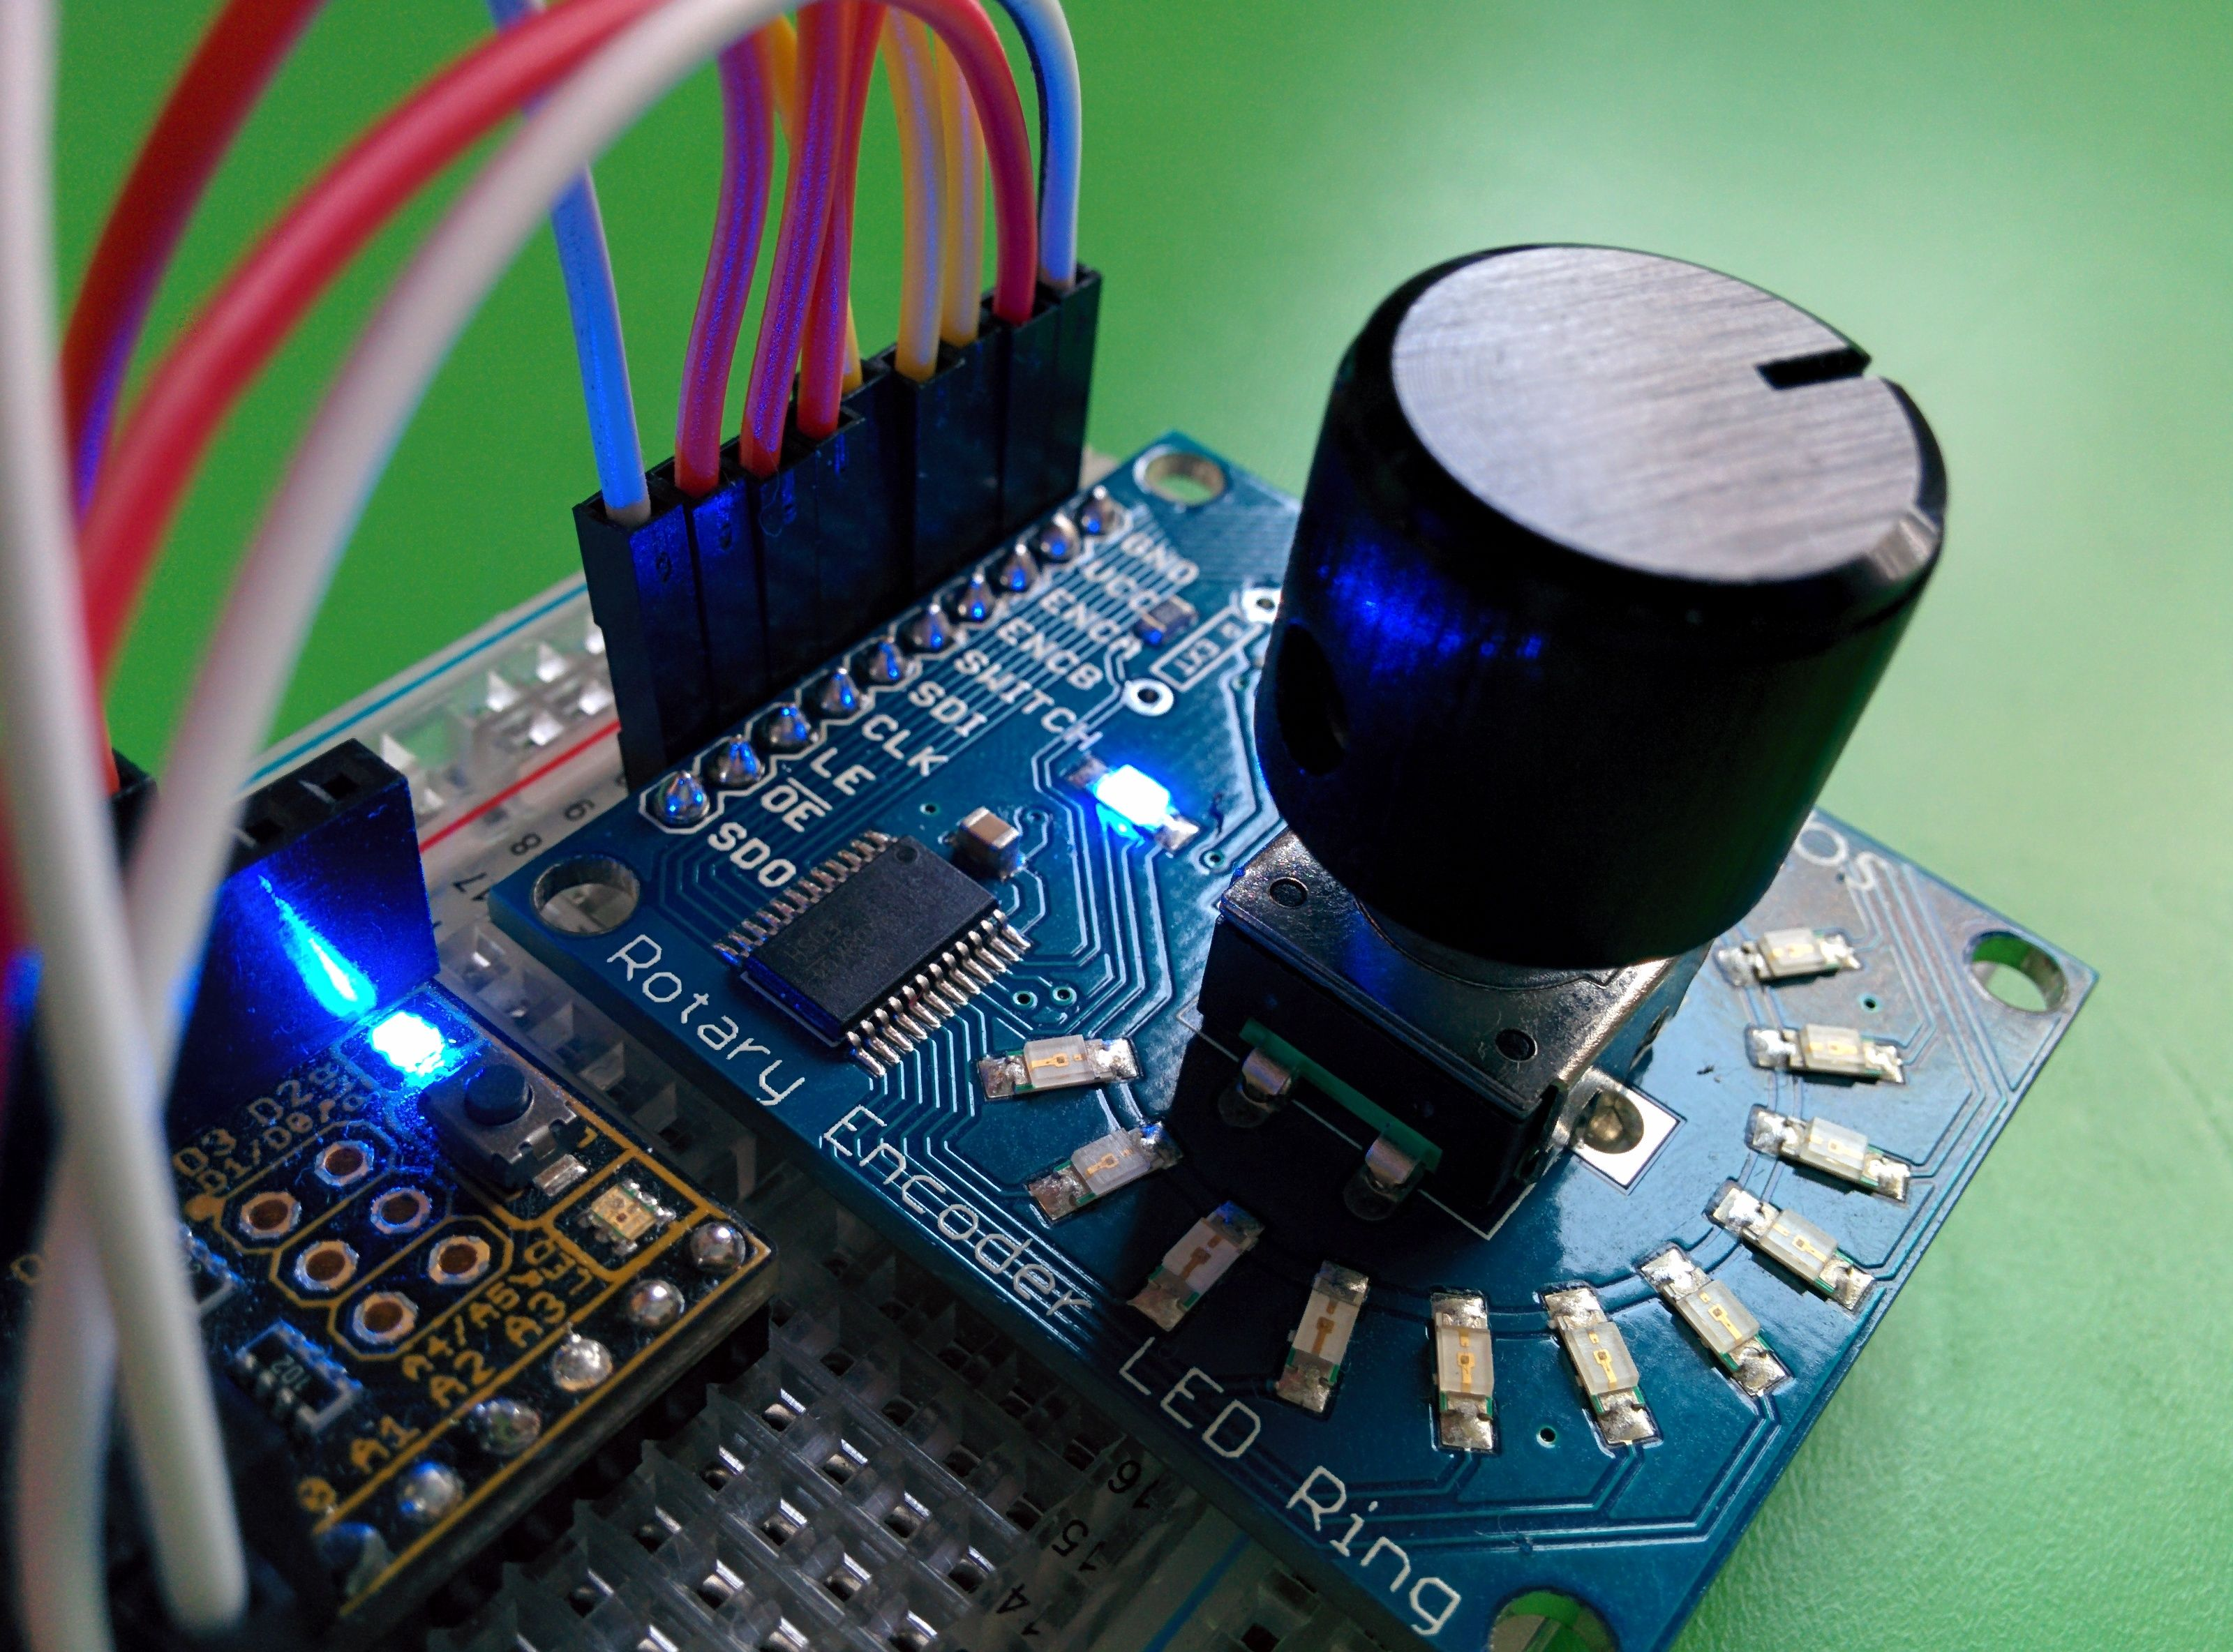 Volume Control With Arduino Leonardo Limejuice How To Build A Rotary Encoder Circuit An 2014 11 14 170104